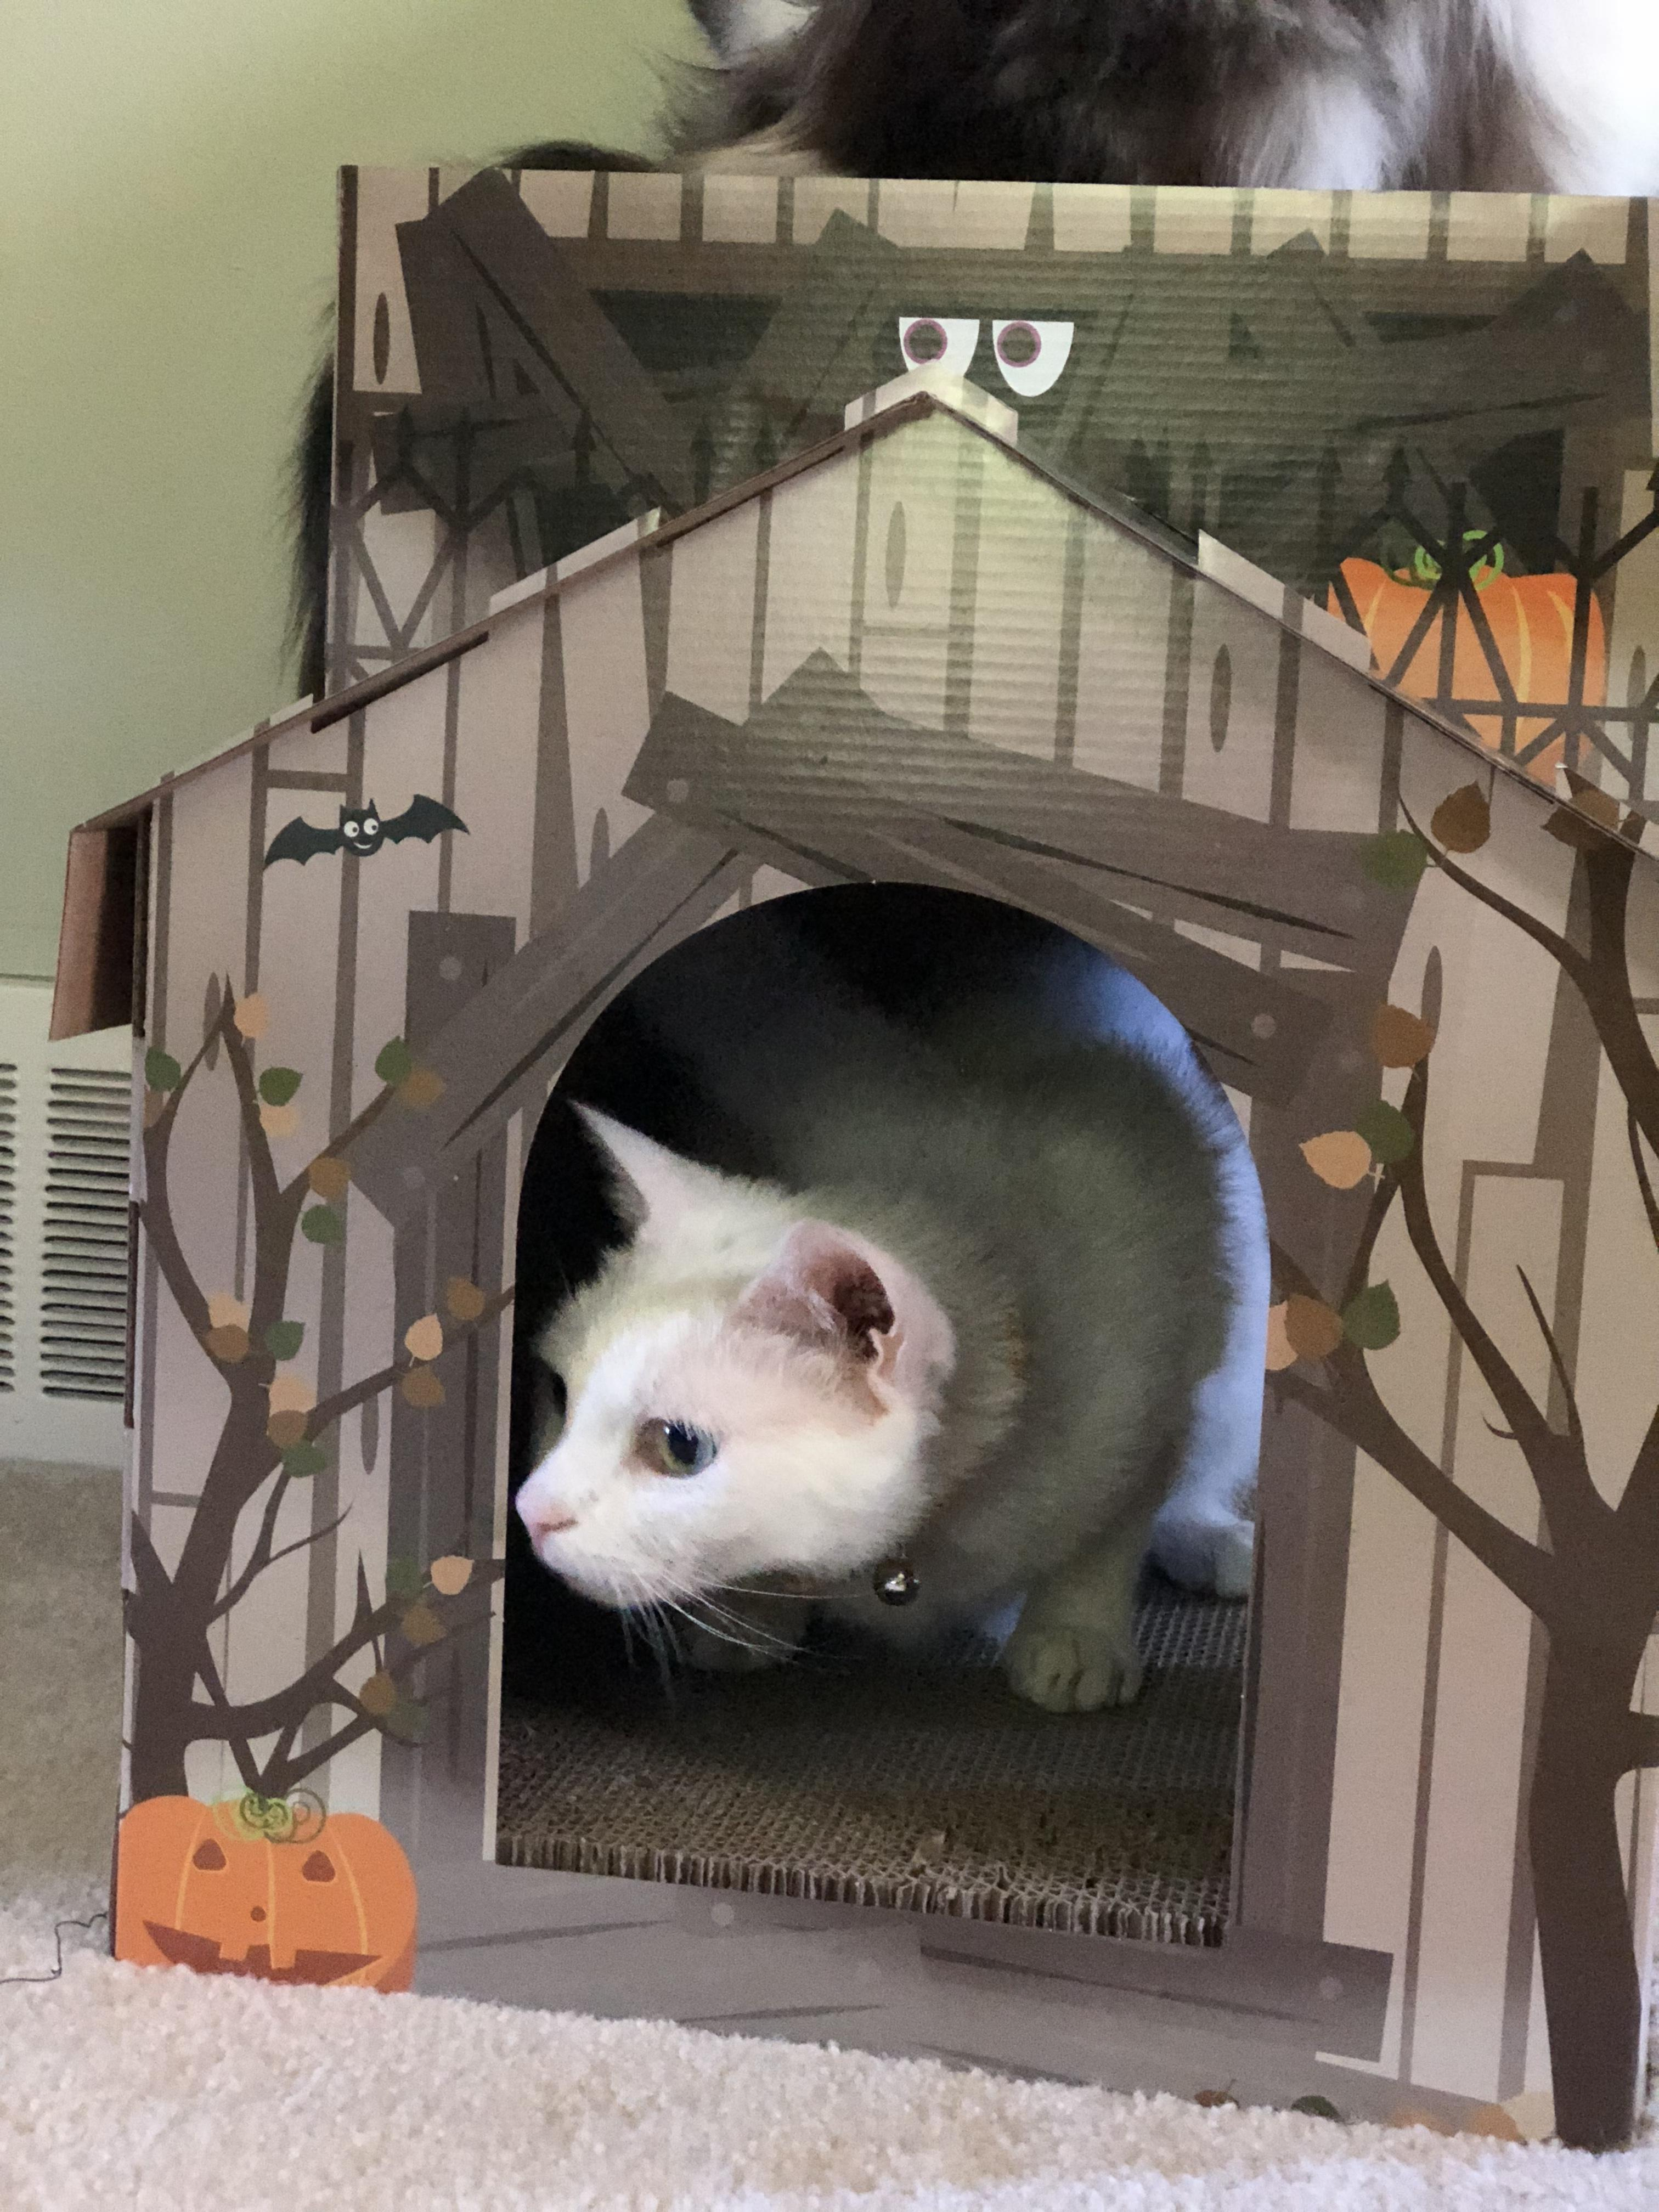 White cat in cardboard house